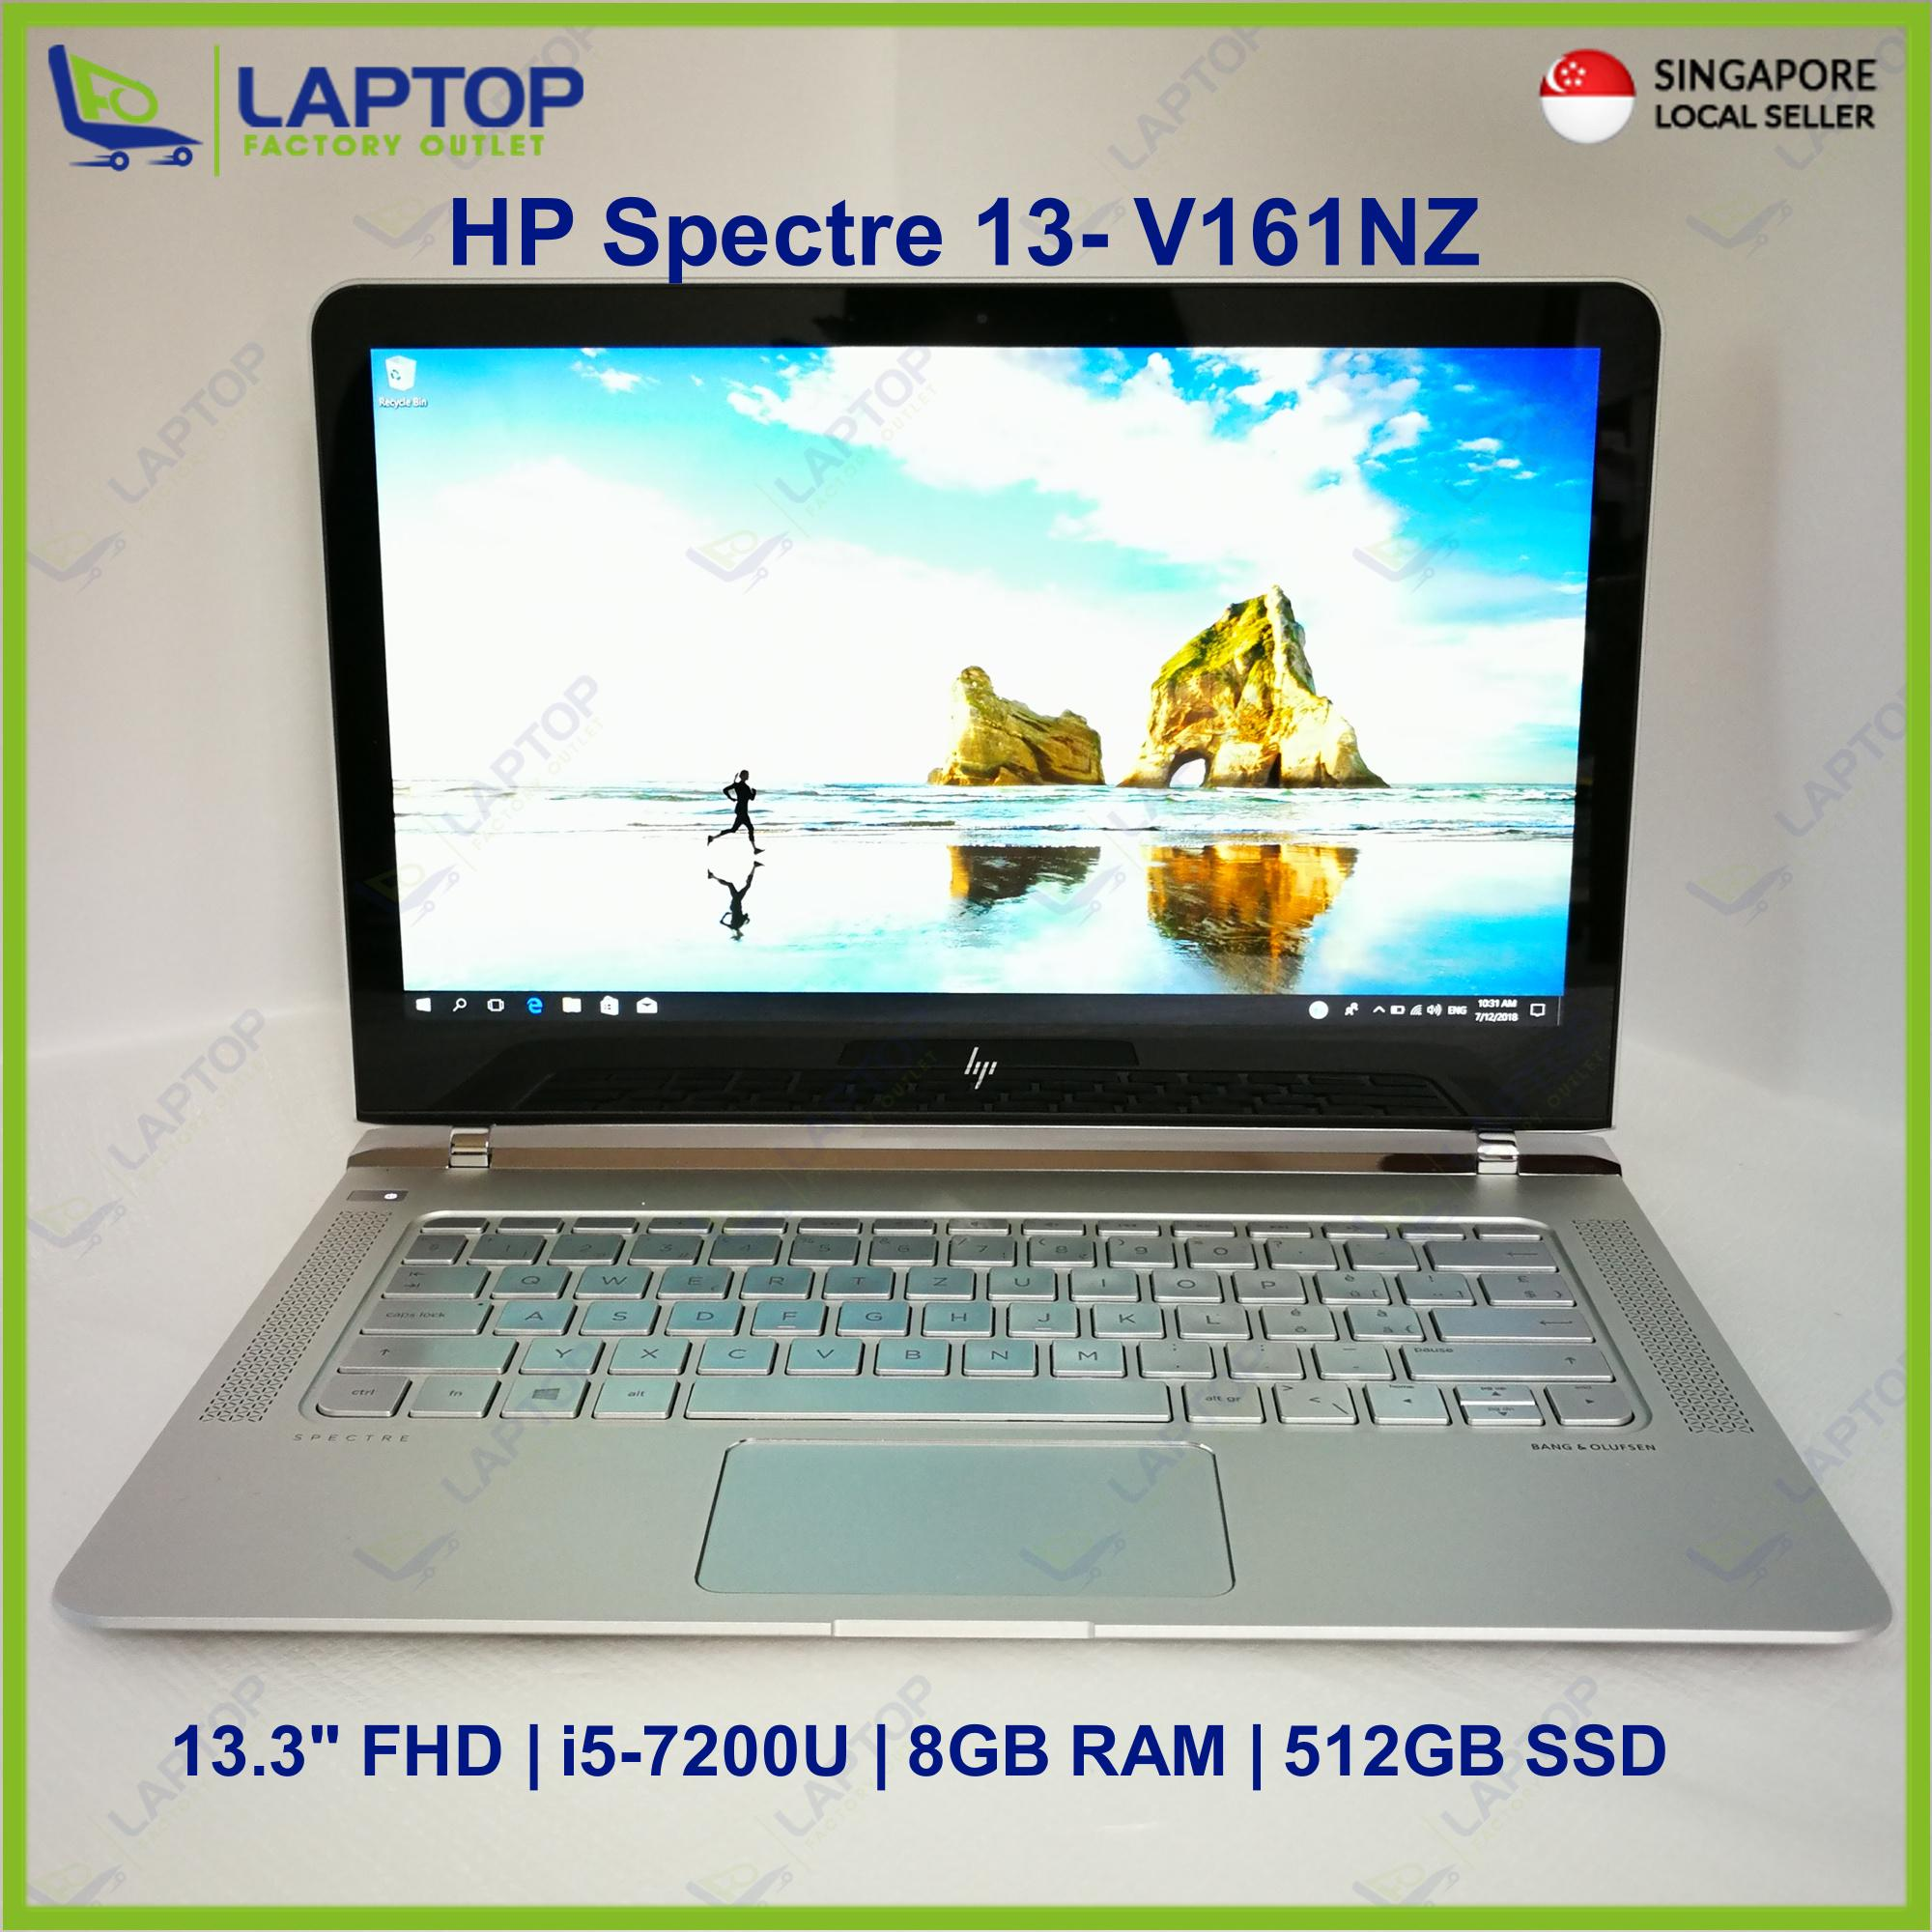 HP SPECTRE 13-V161NZ (i5-7/8GB/512GB) @Thin & Light @ Premium Preowned [Refurbished]